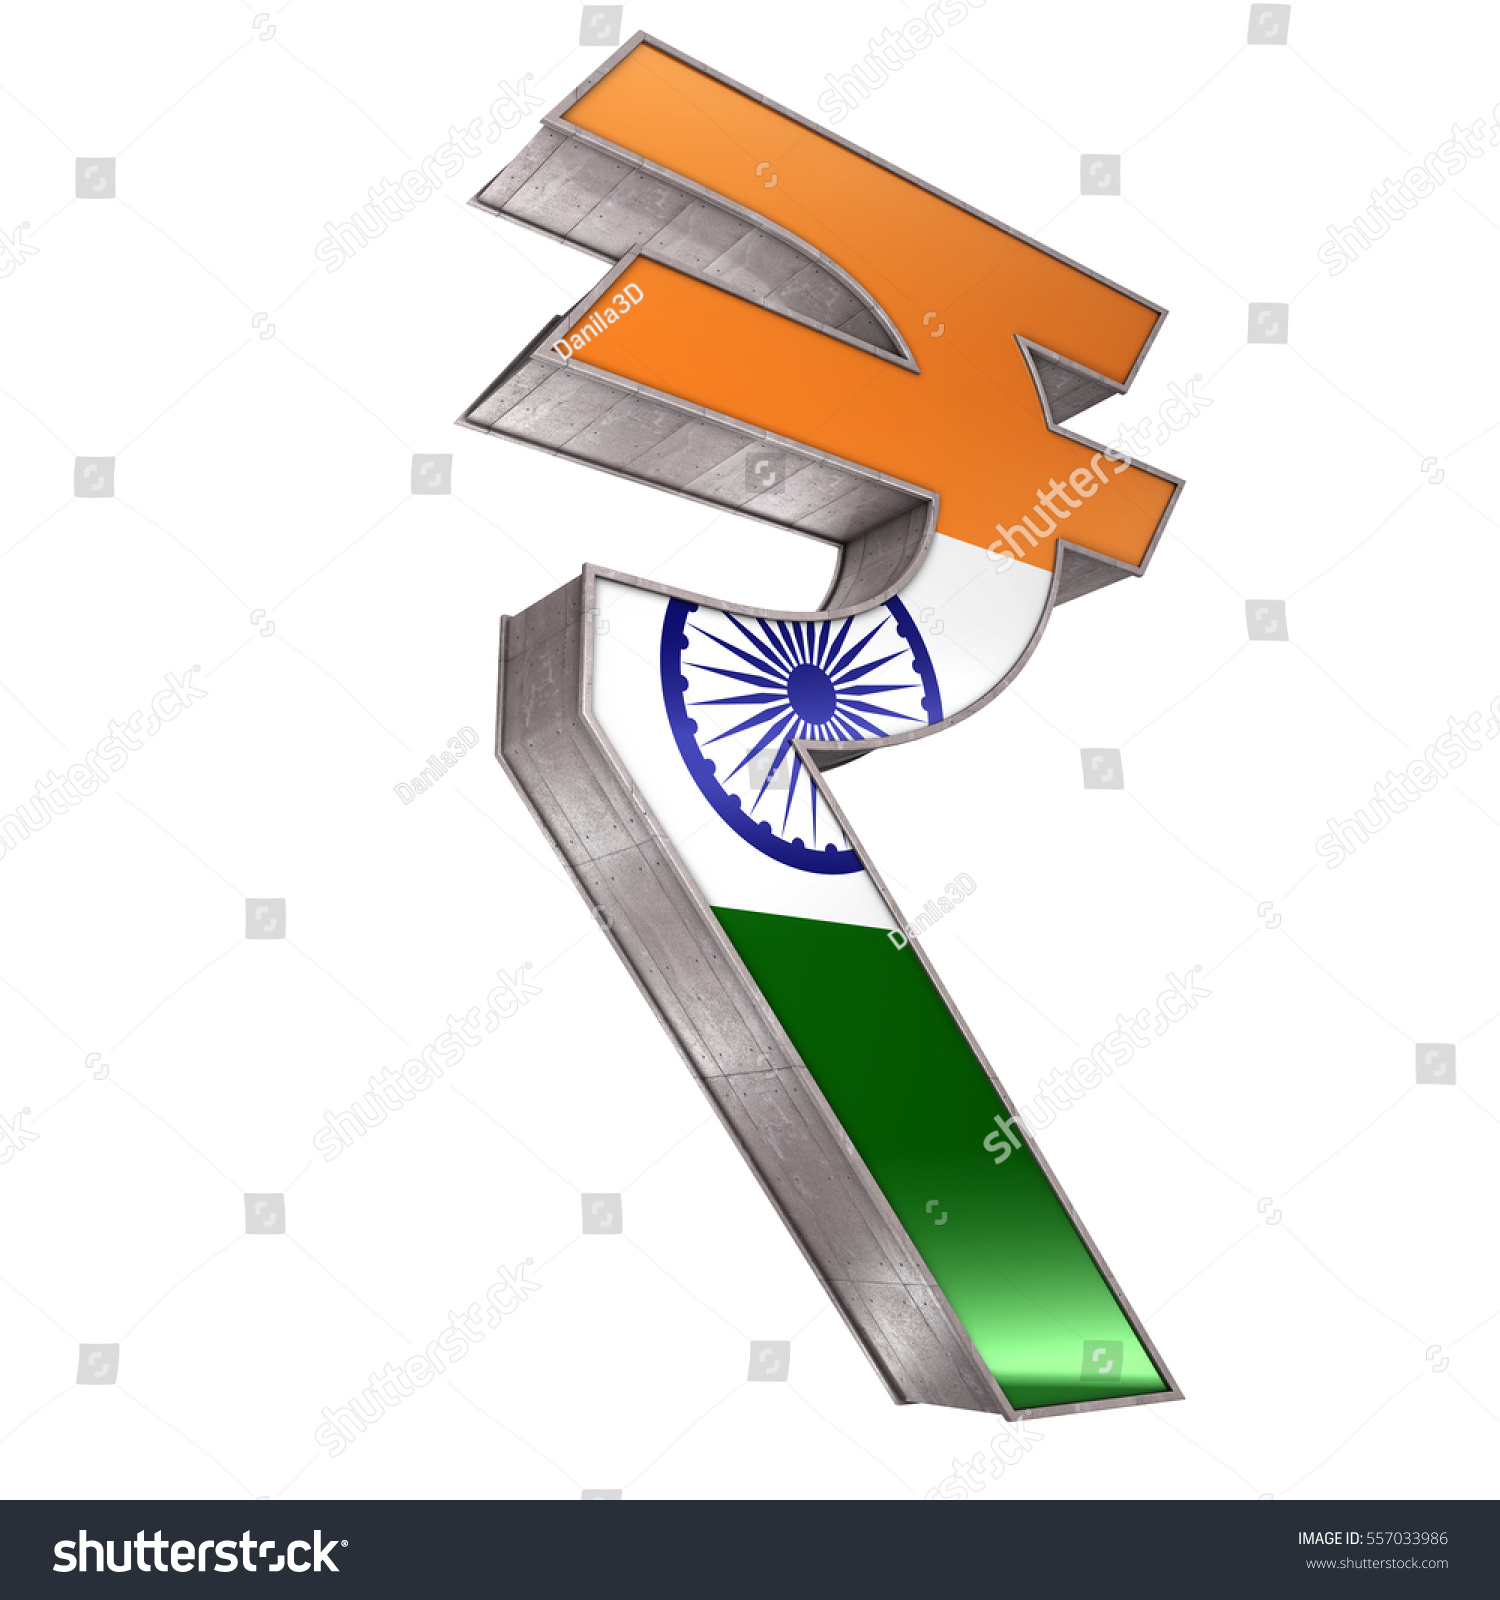 Indian Rupee Symbol 3 D Render Isolated Stock Illustration 557033986